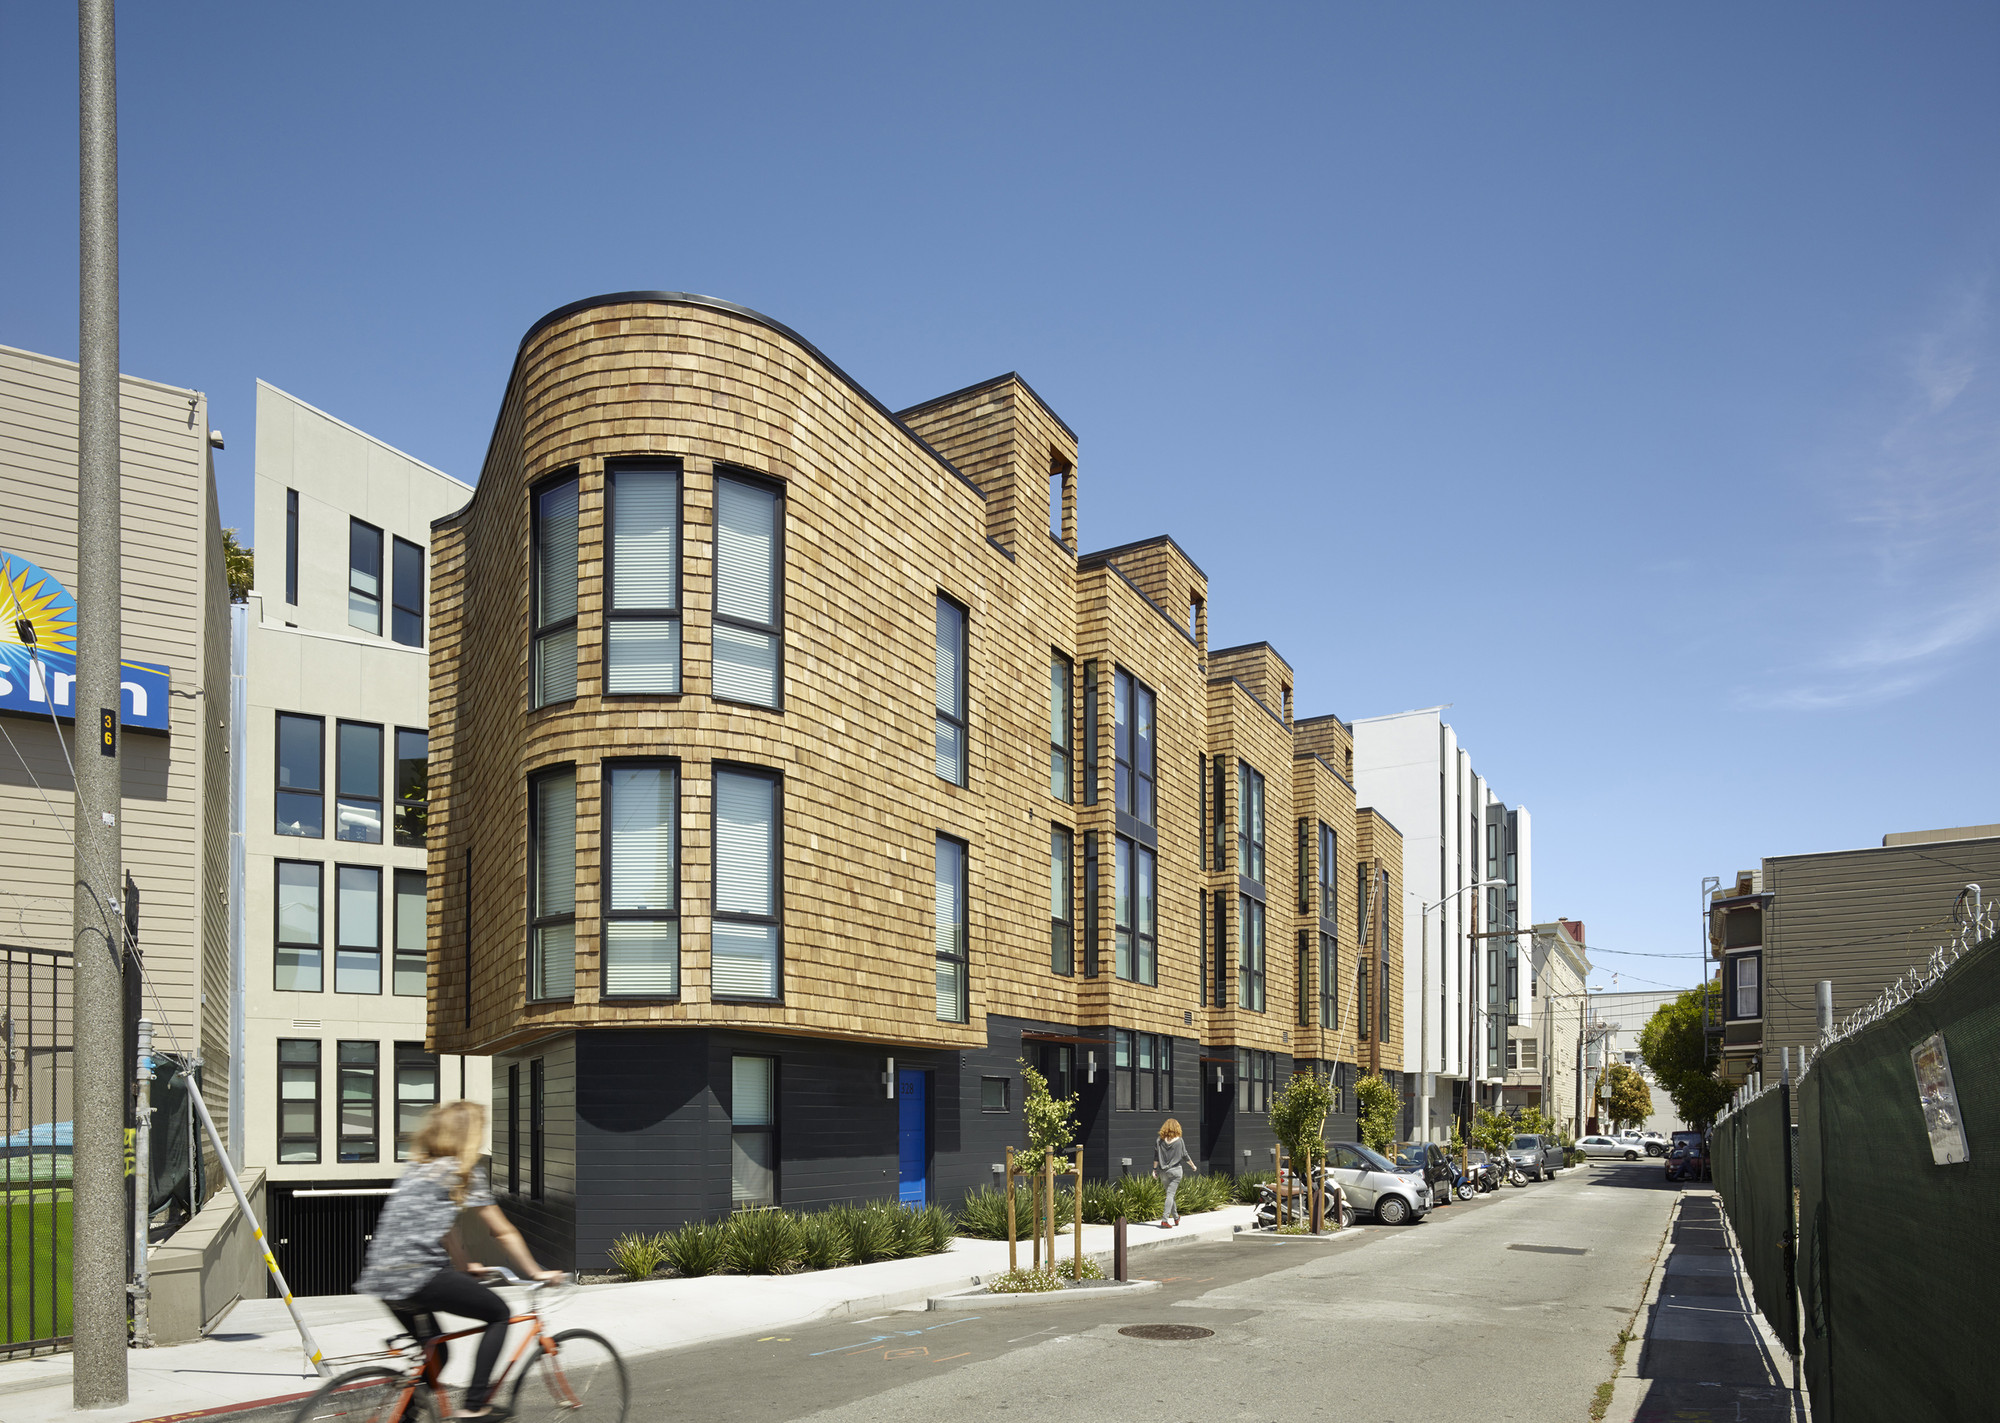 300 Ivy Street  / David Baker Architects, © Bruce Damonte